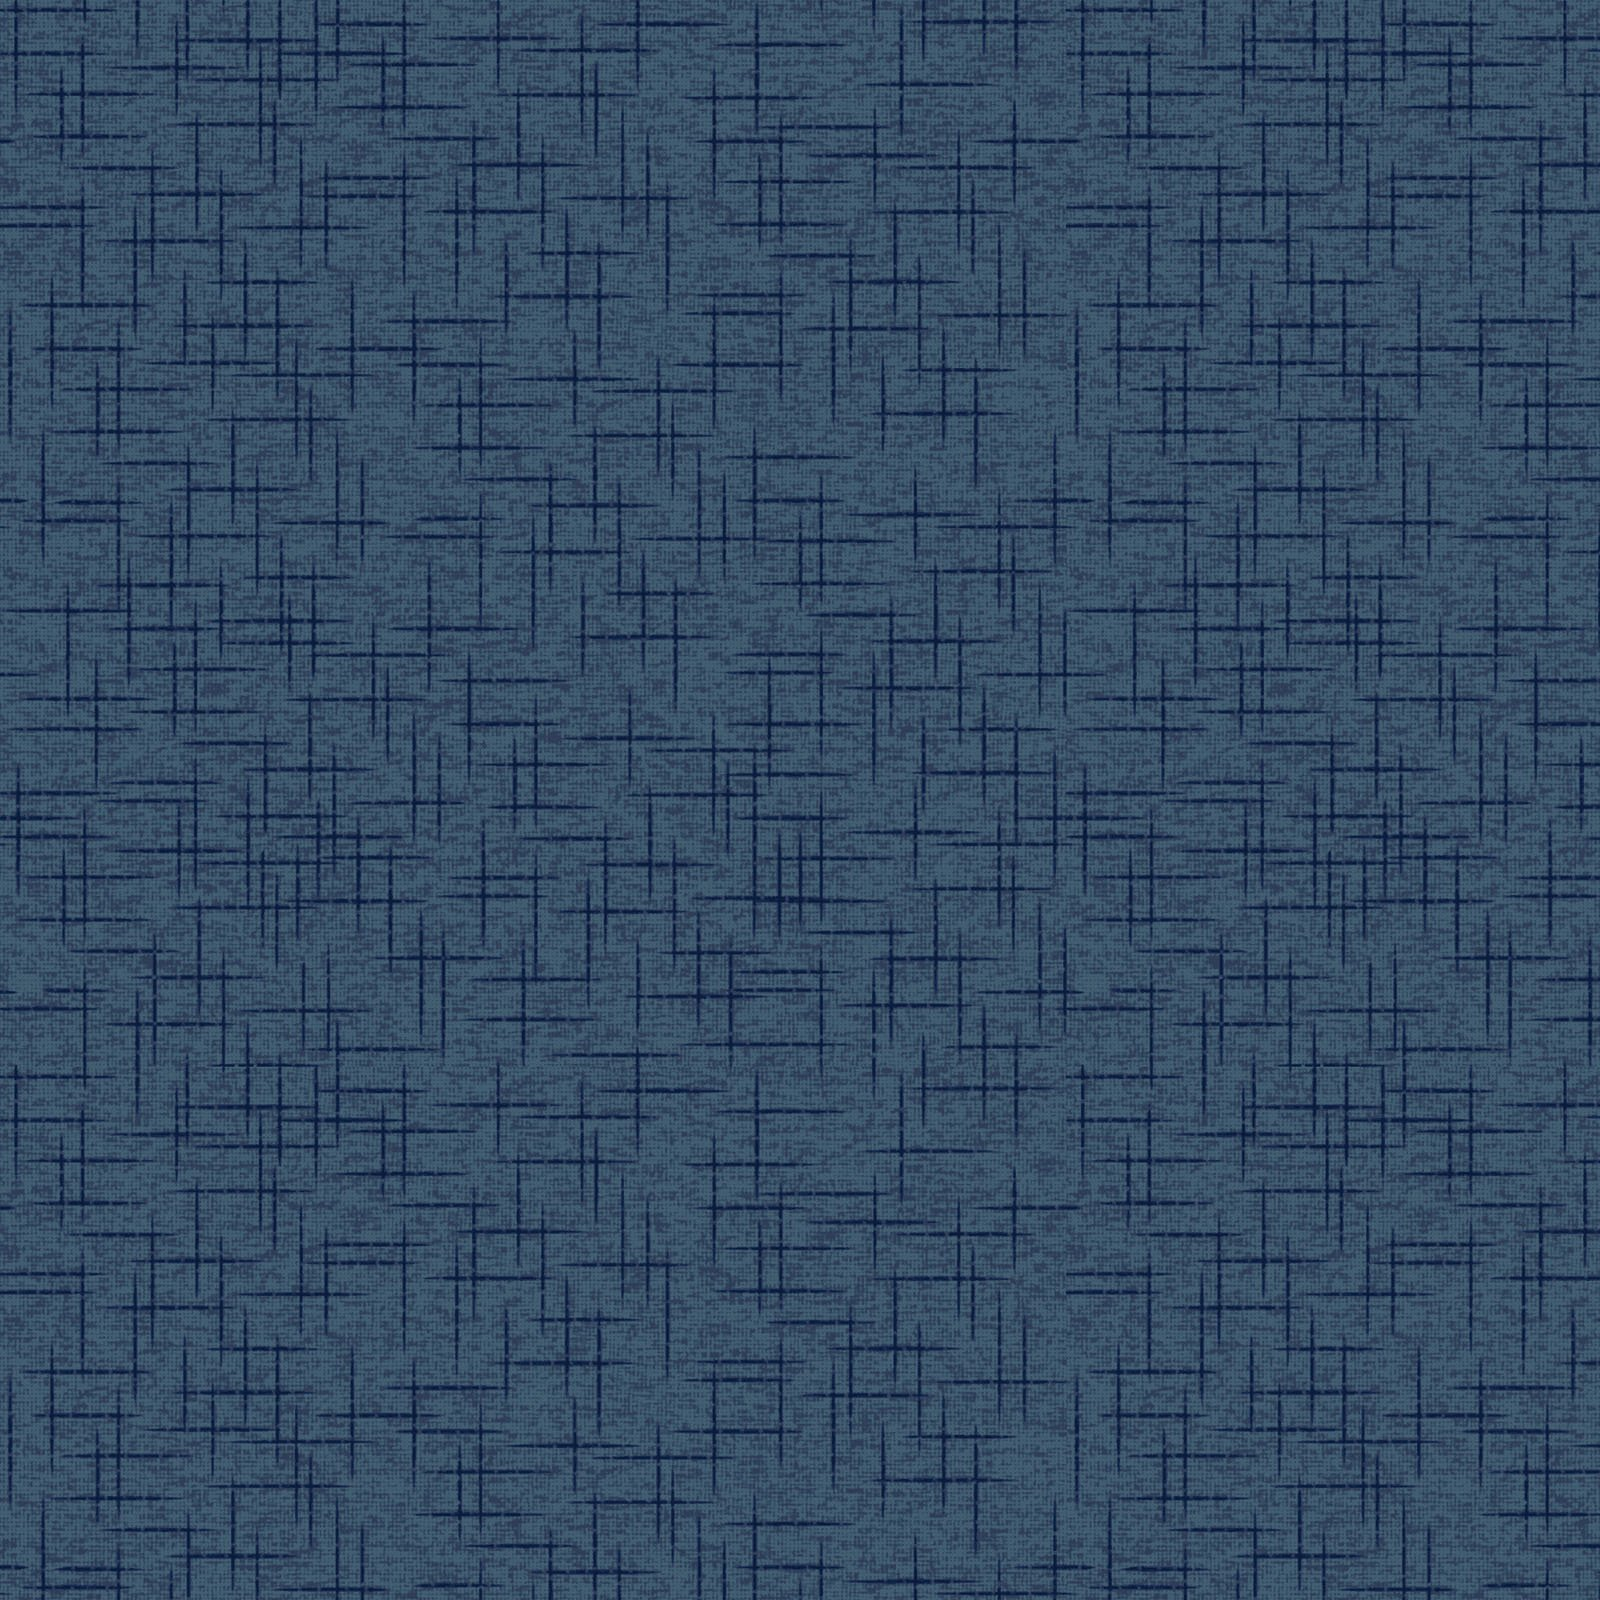 EESC-QB204 N - KIMBERBELL QUILT BACKS 108 BY KIMBERBELL LINEN TEXTURE NAVY - ARRIVING MARCH 2021